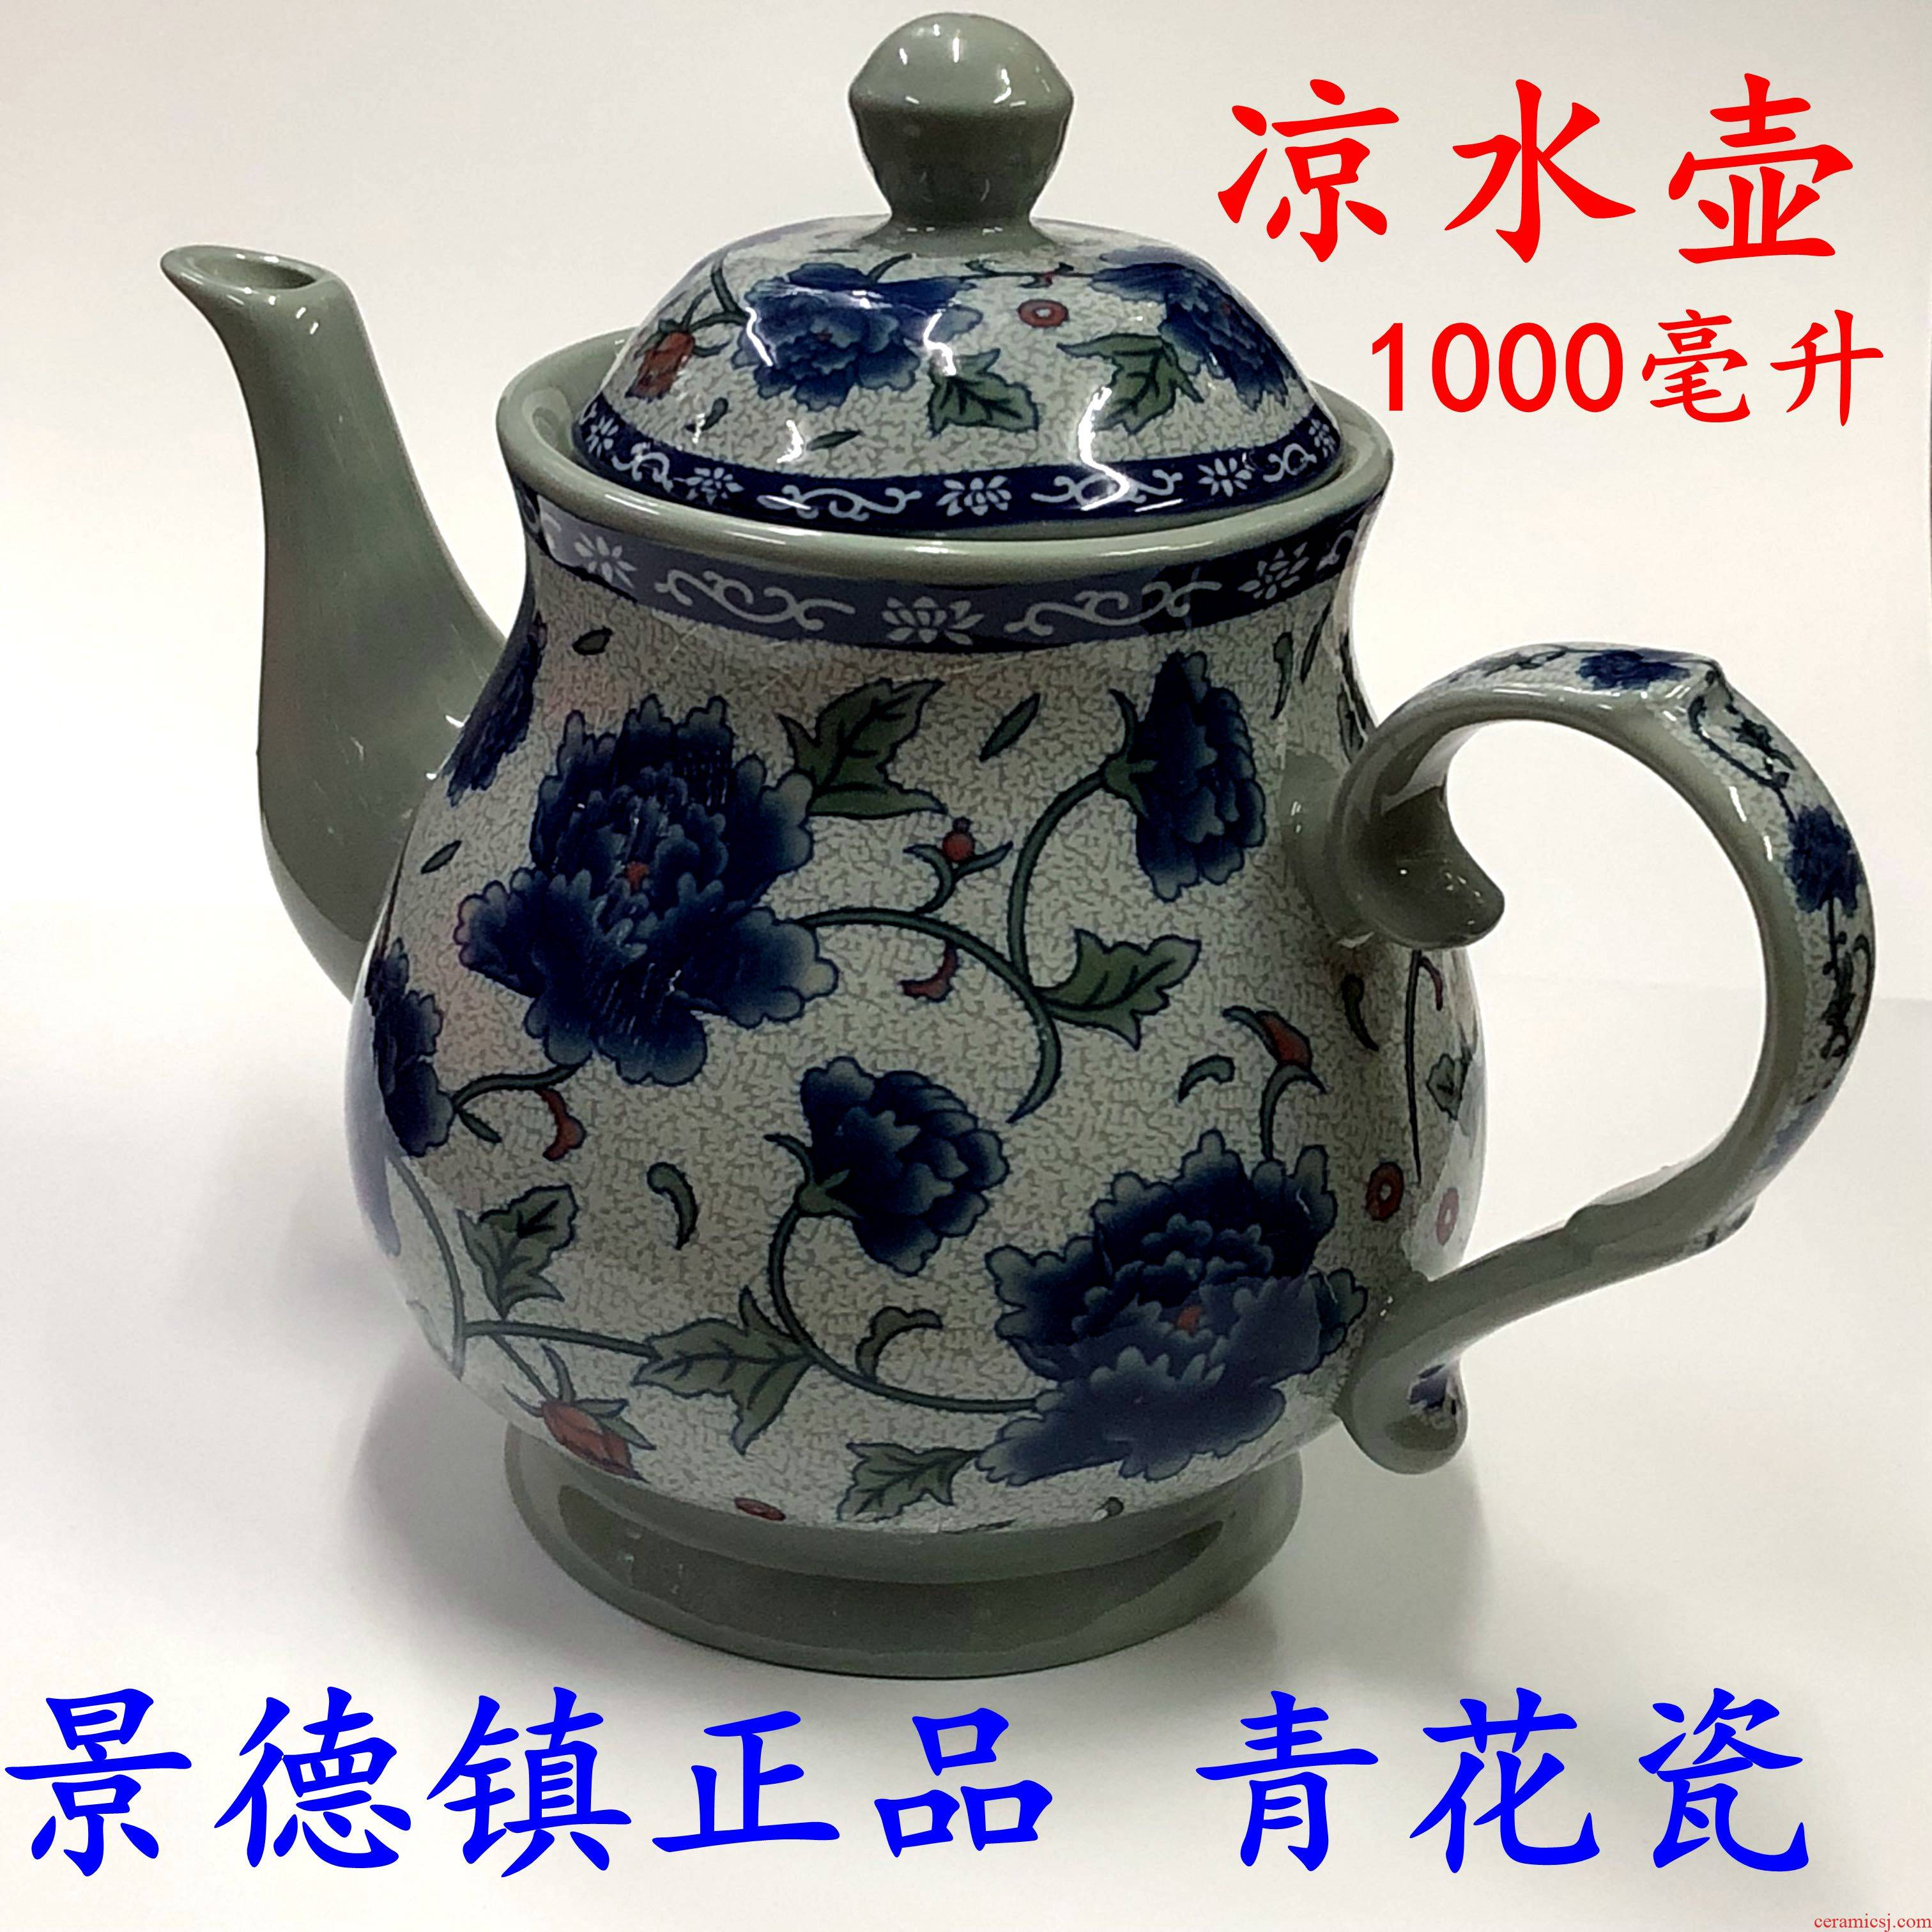 Jingdezhen blue and white porcelain heat - resistant ceramic teapot with large cold cold water kettle hotel big capacity of the teapot